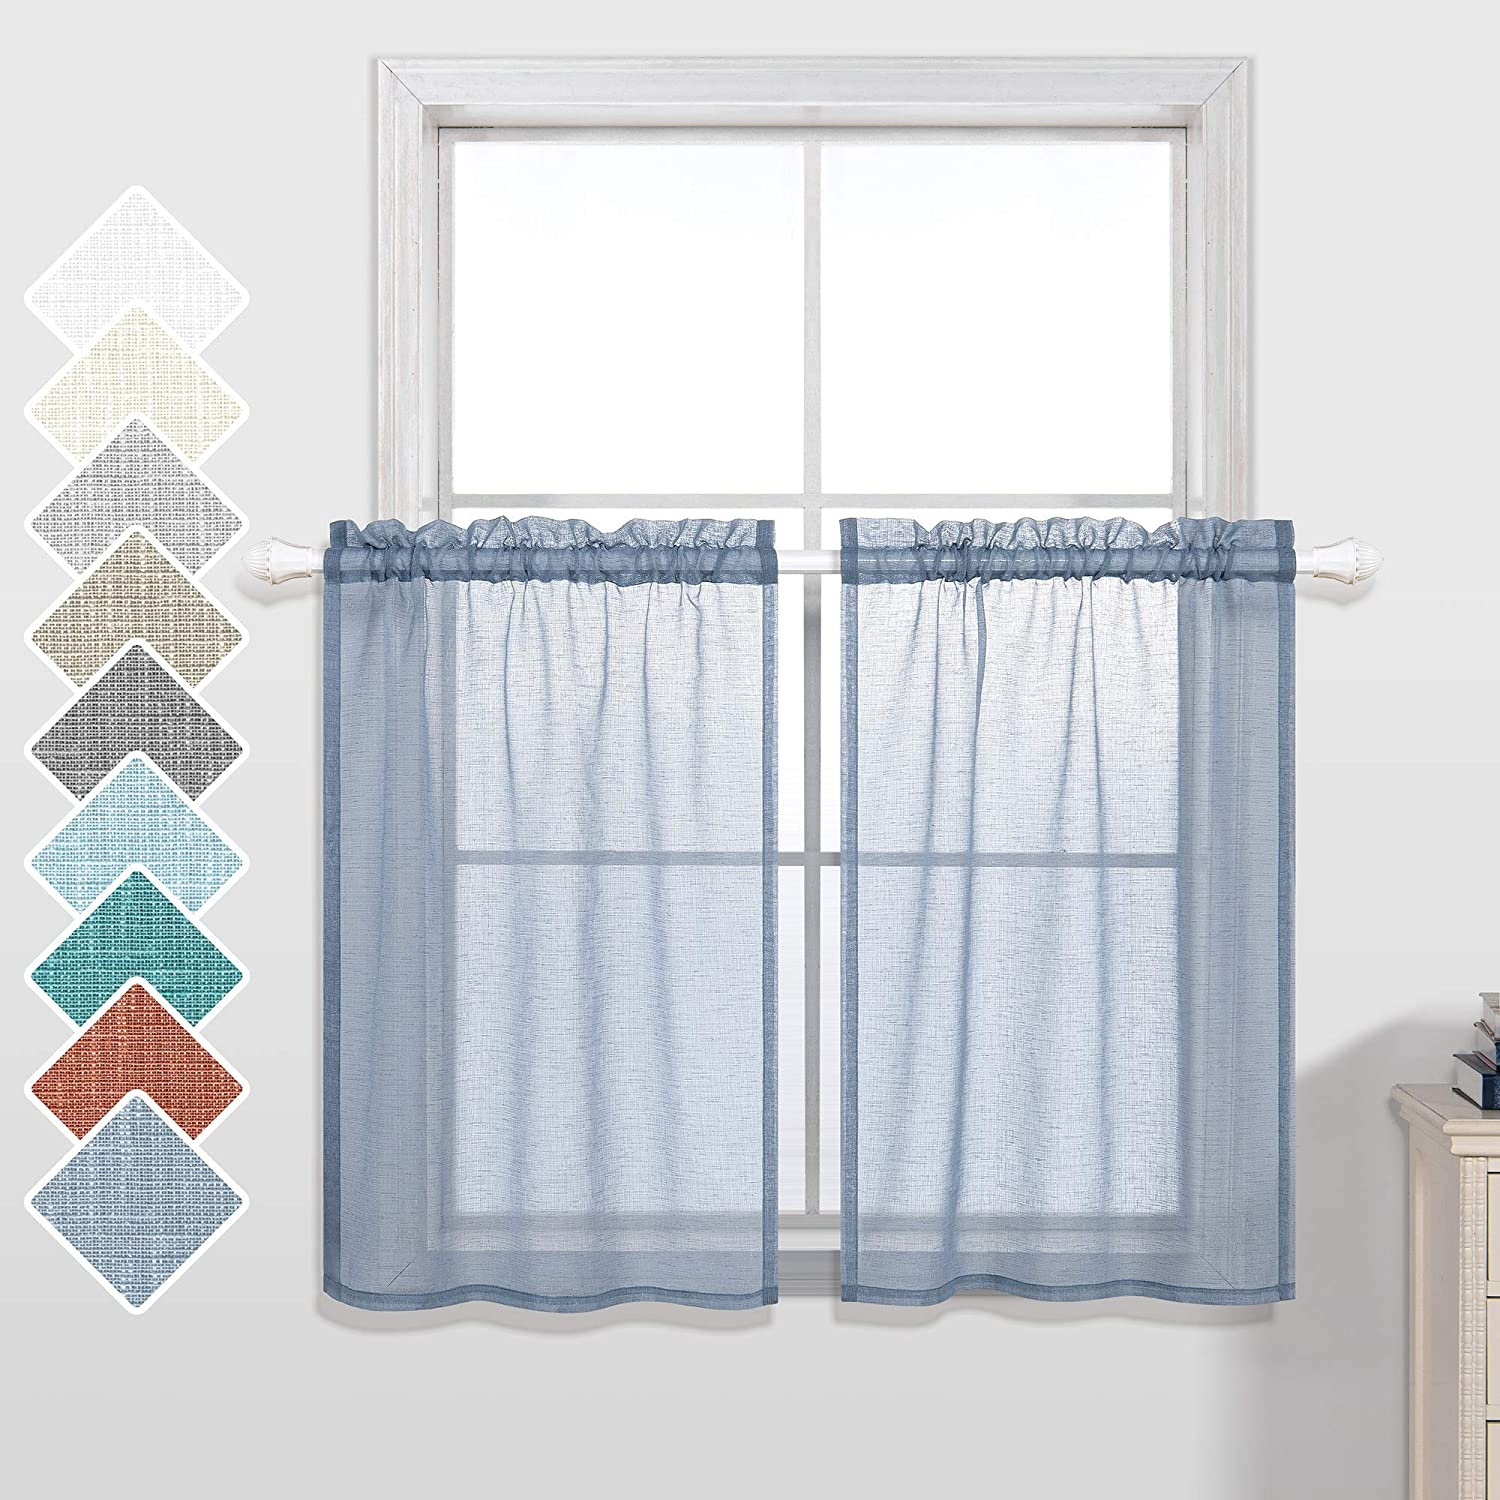 KOUFALL Dusty Blue Short Curtains 24 Inch Length for Small Windows Set of 2 Pieces Sheer Kitchen Curtains 30x24 Long